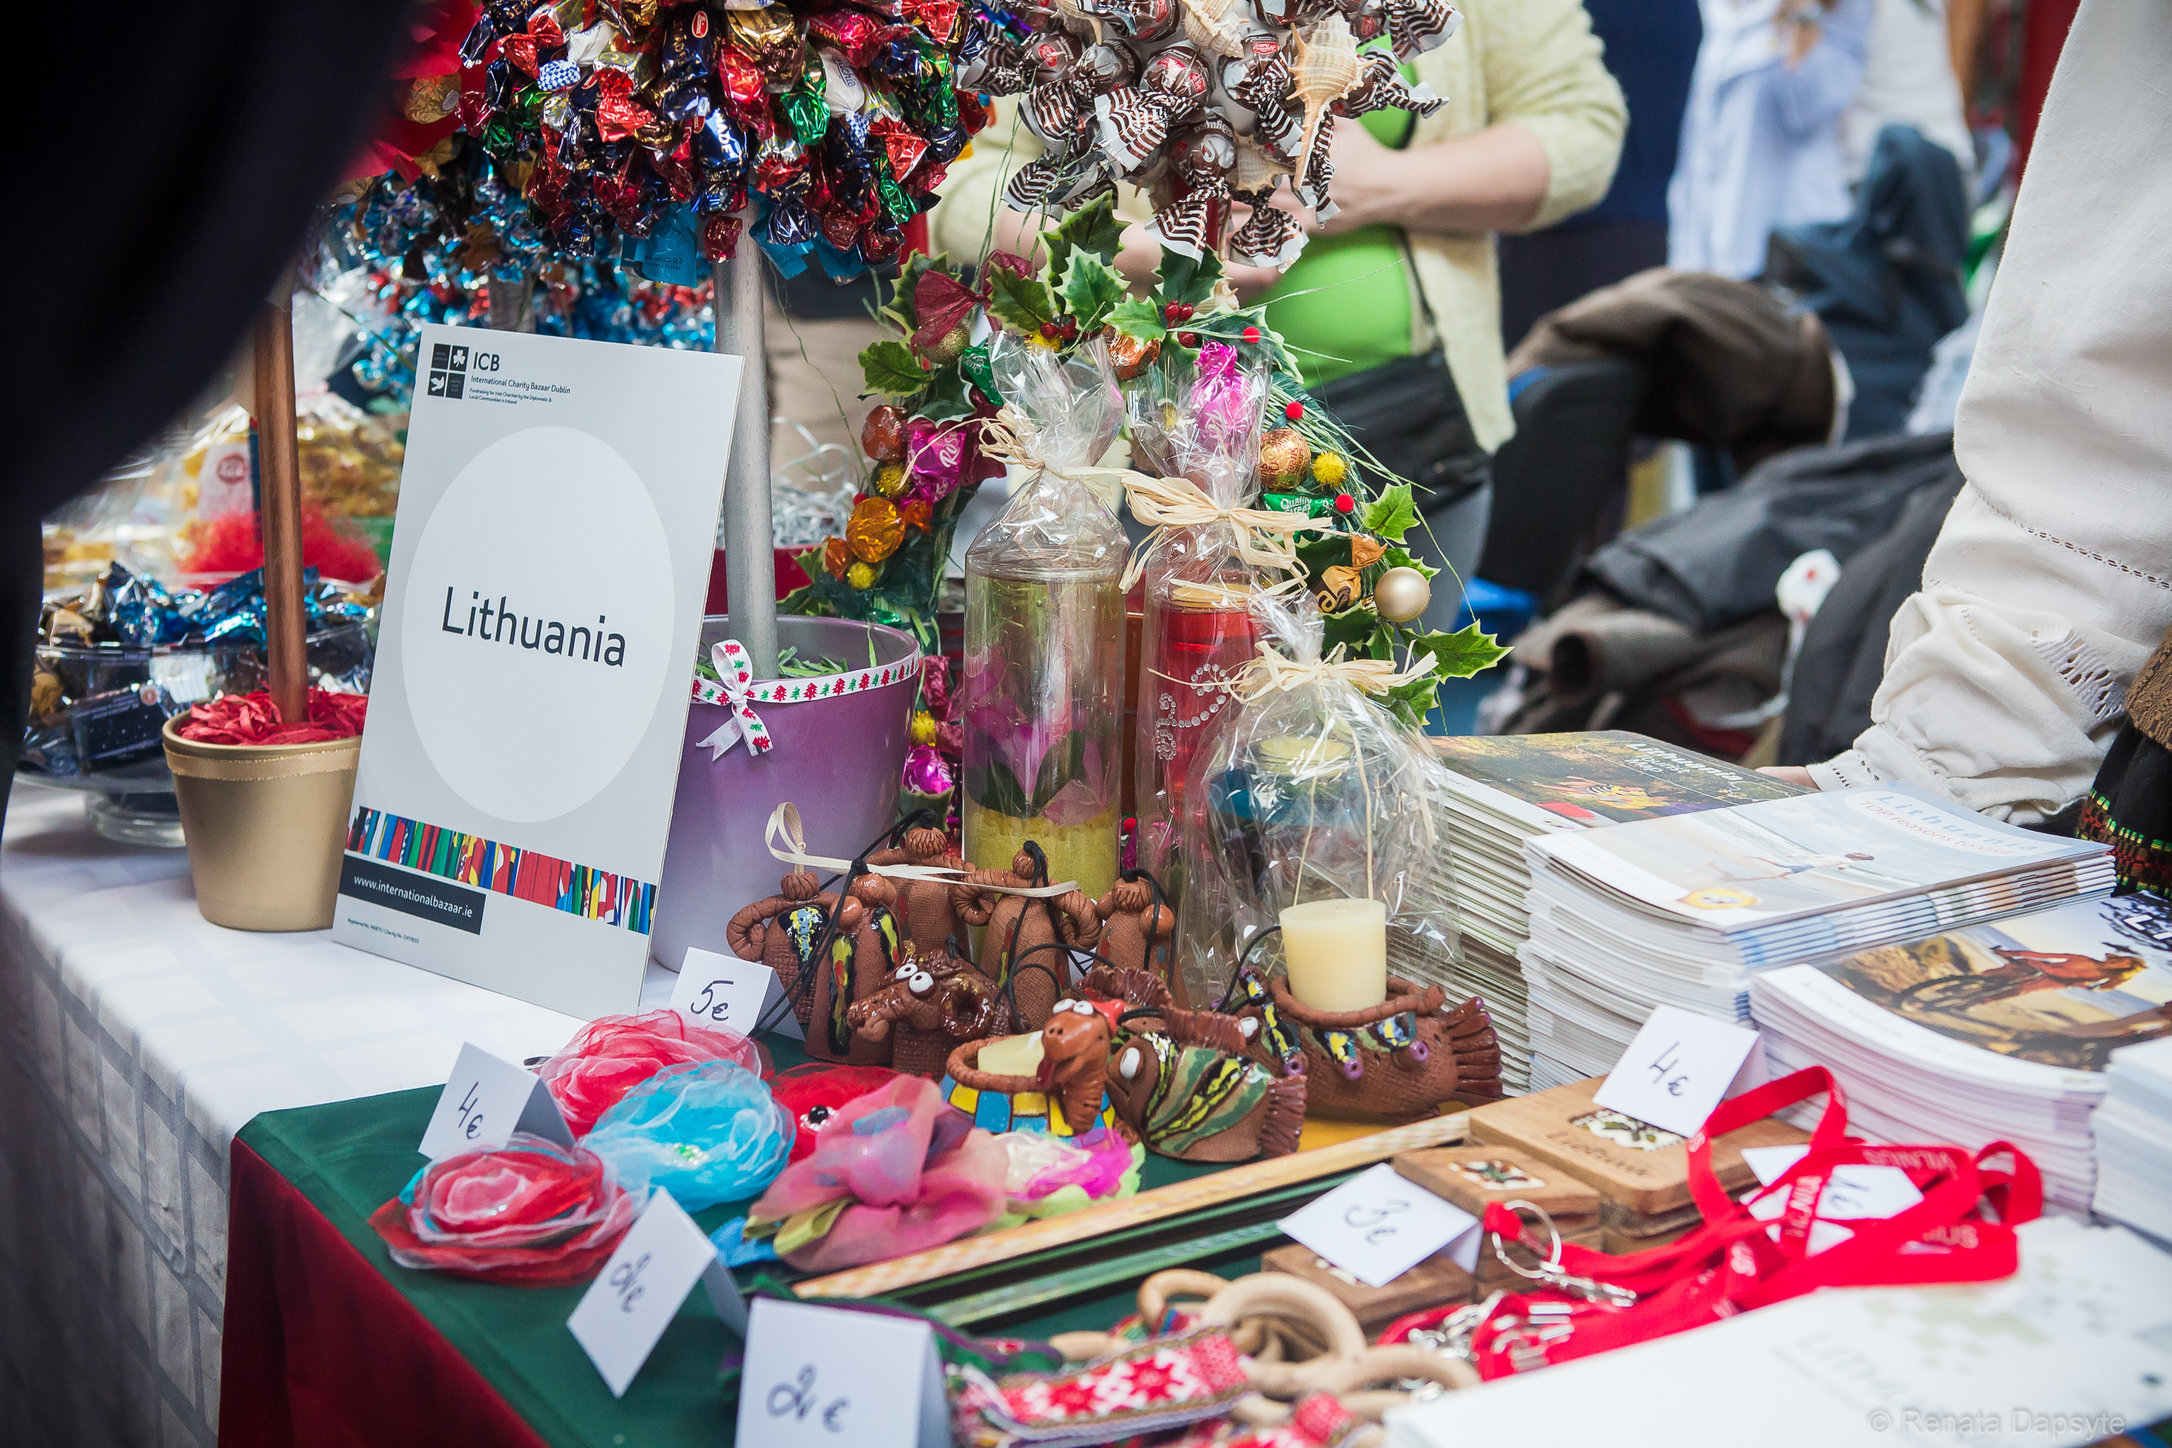 015_International Charity Bazaar Dublin 2013.JPG